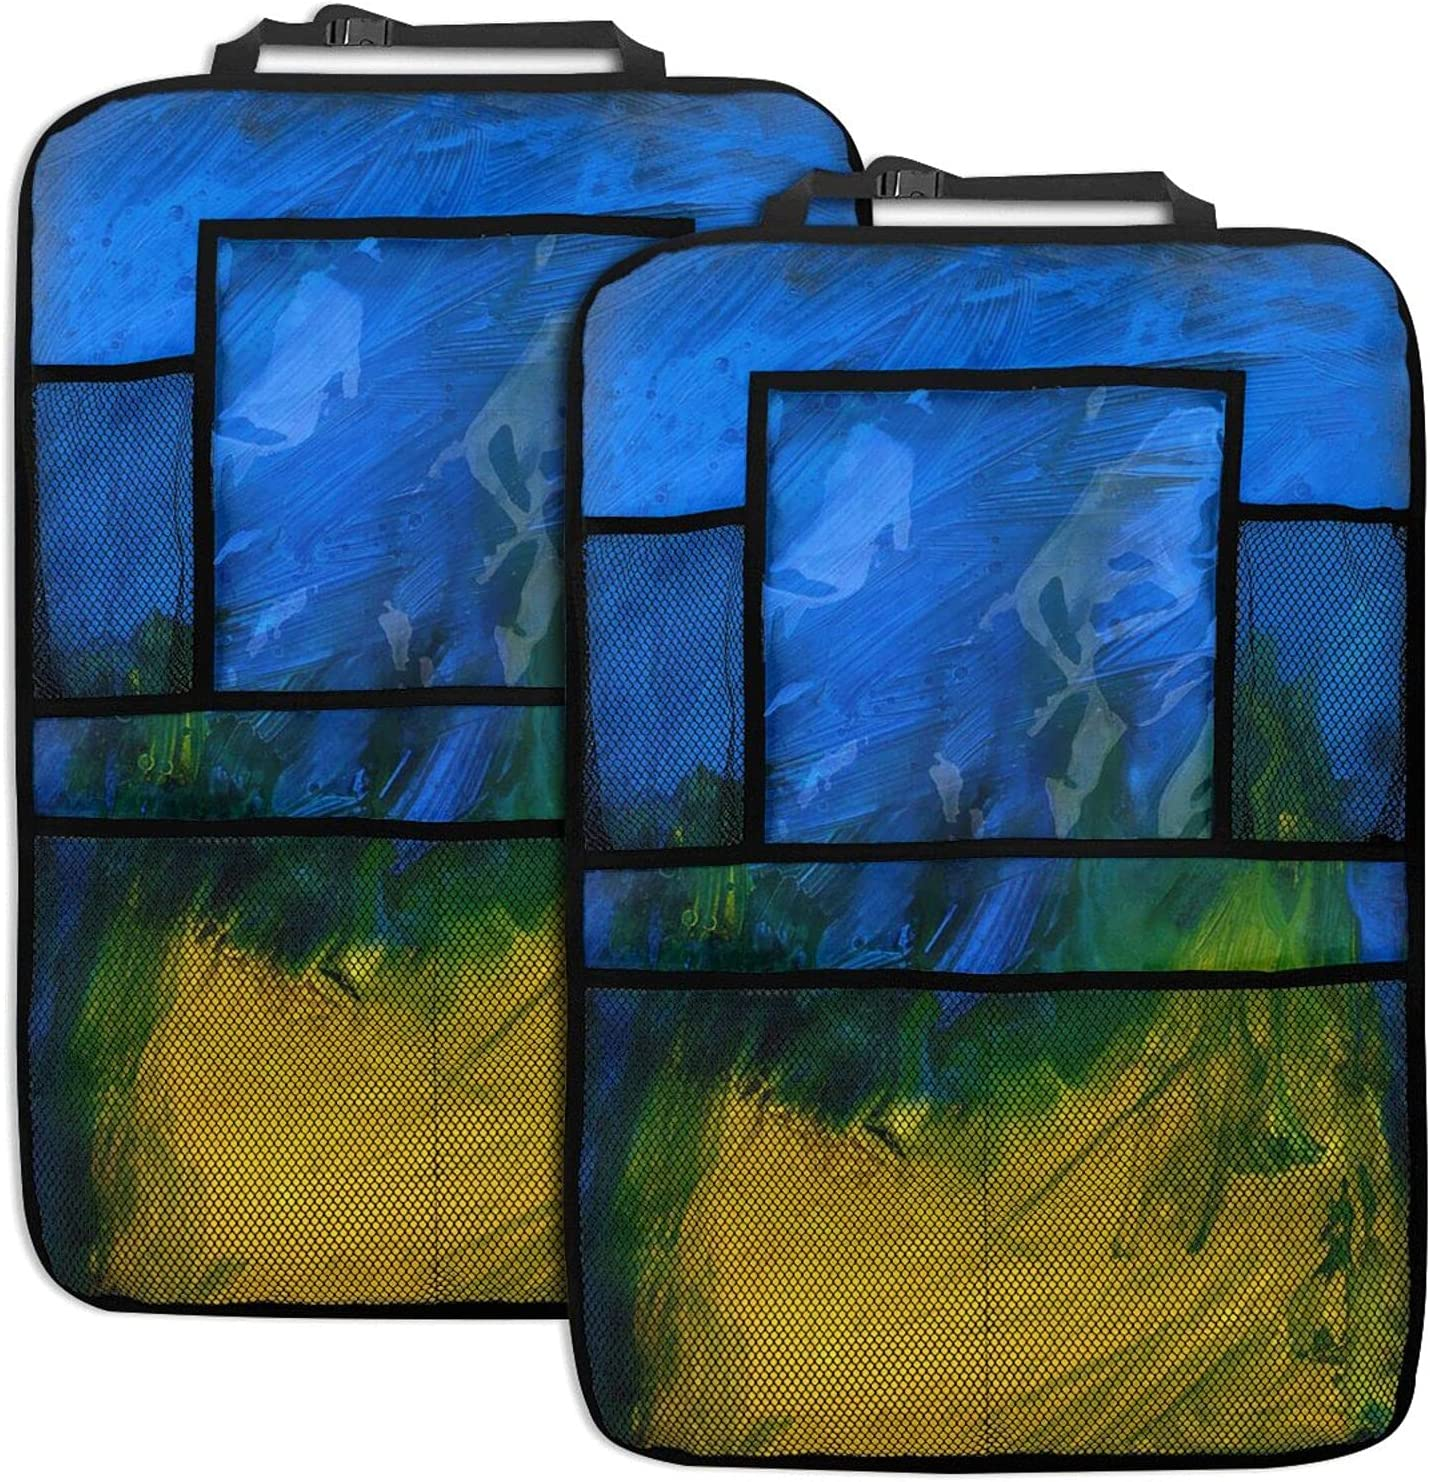 Blue And Memphis Mall Yellow Abstract Art 2pc Weekly update Organizer Car Backseat Bac Seat